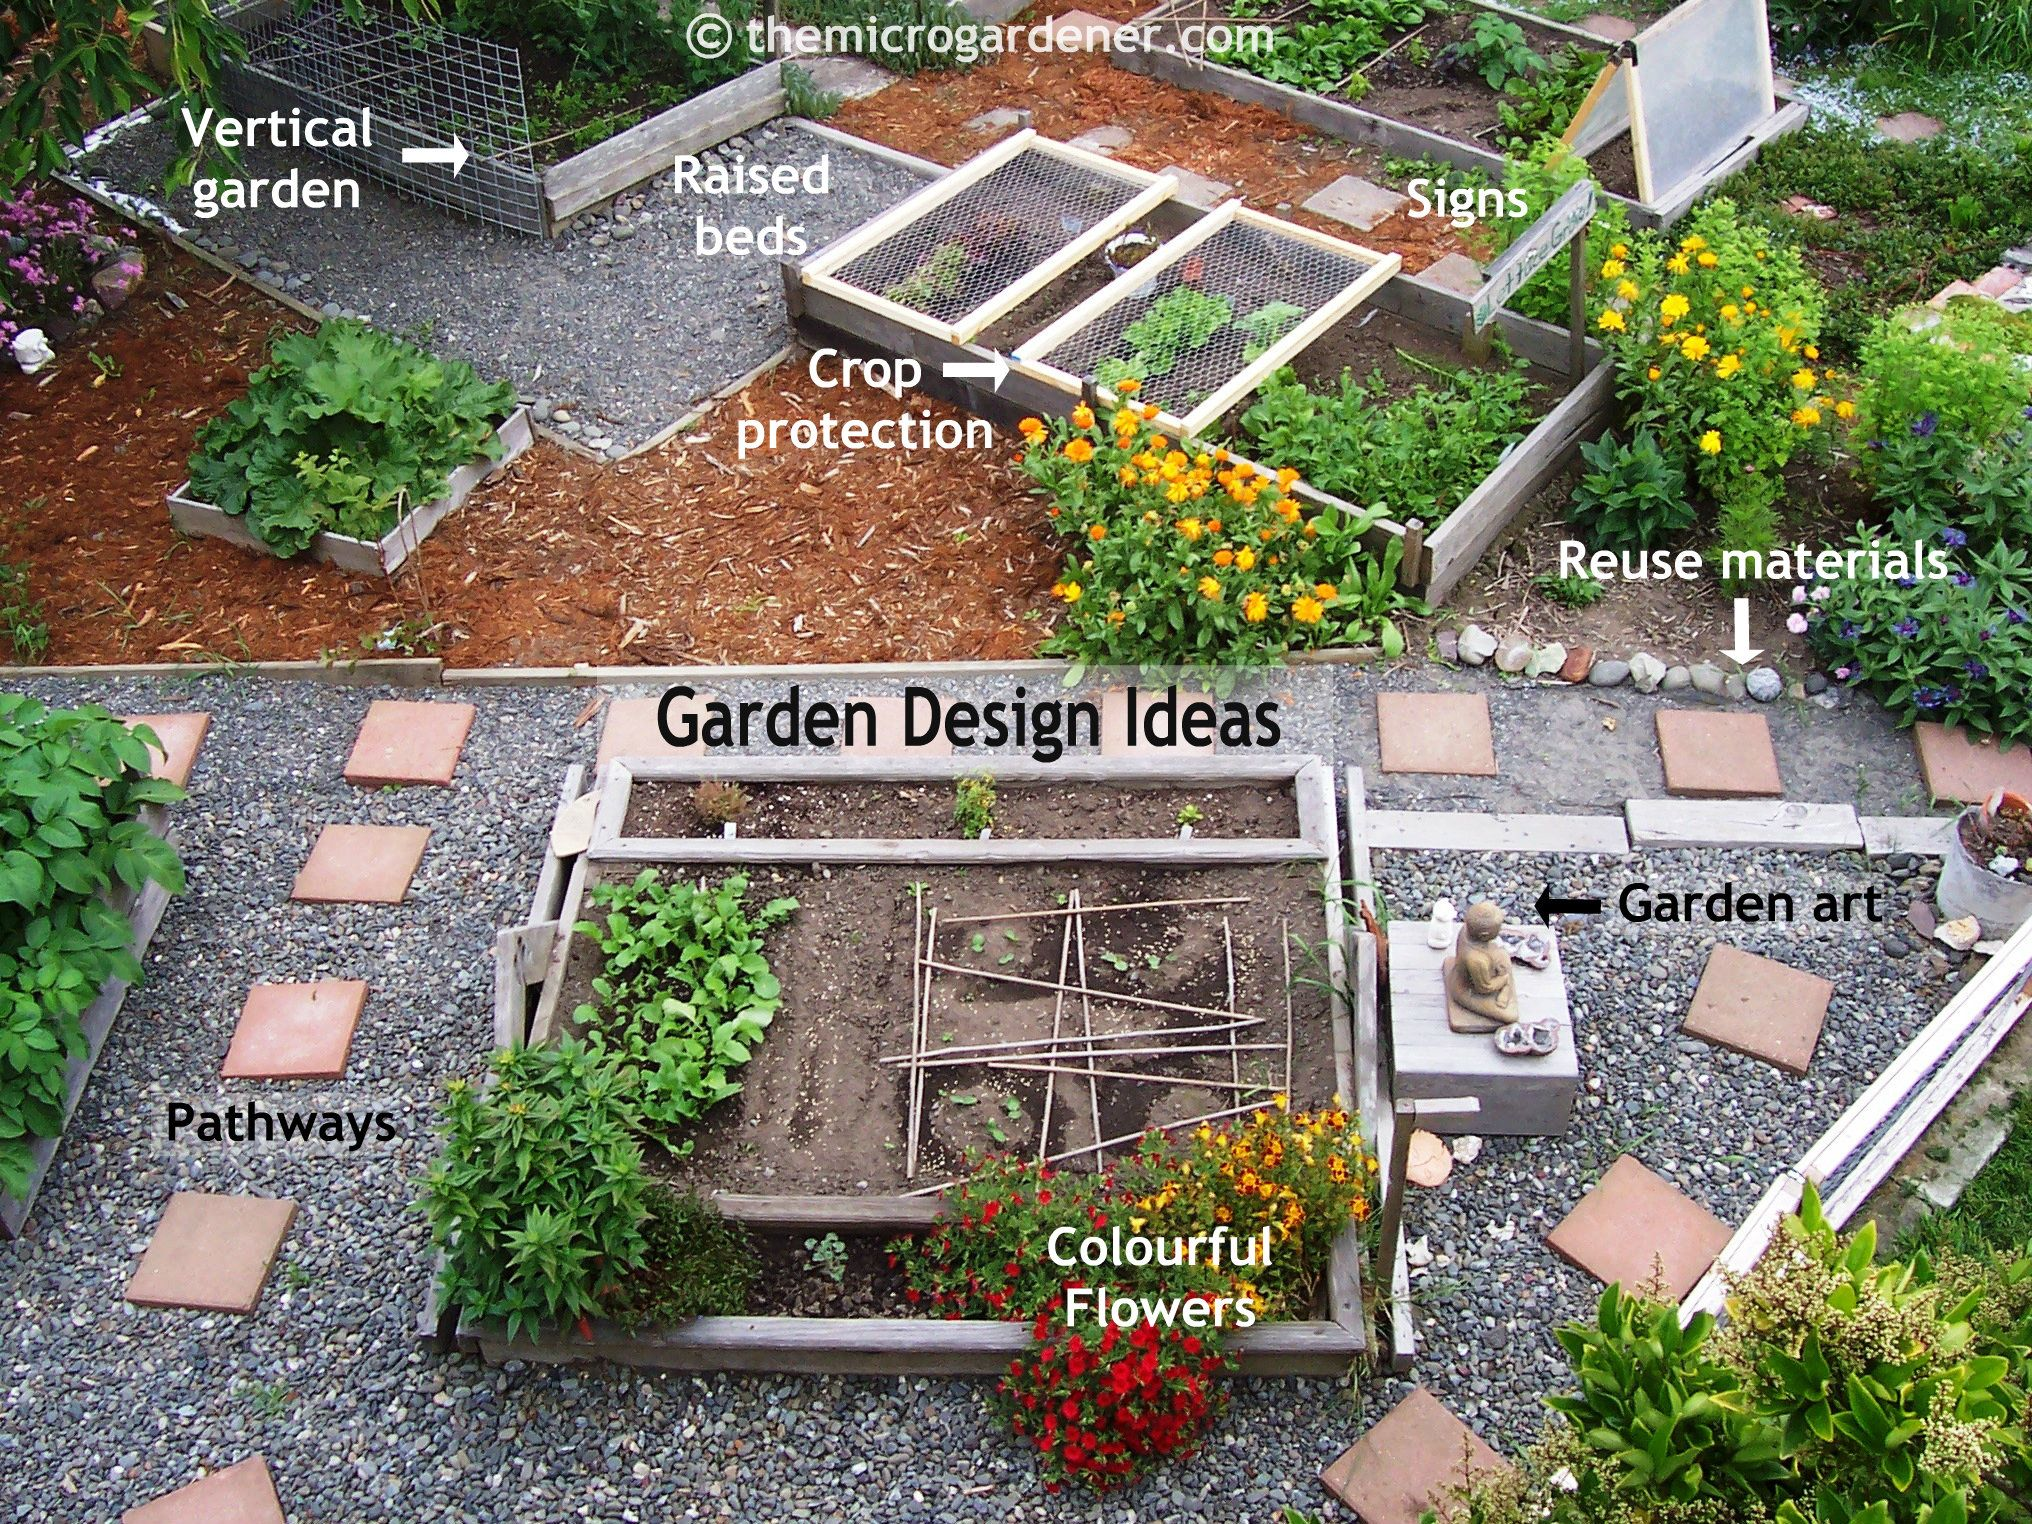 Small garden design ideas on pinterest vertical gardens for Garden space ideas